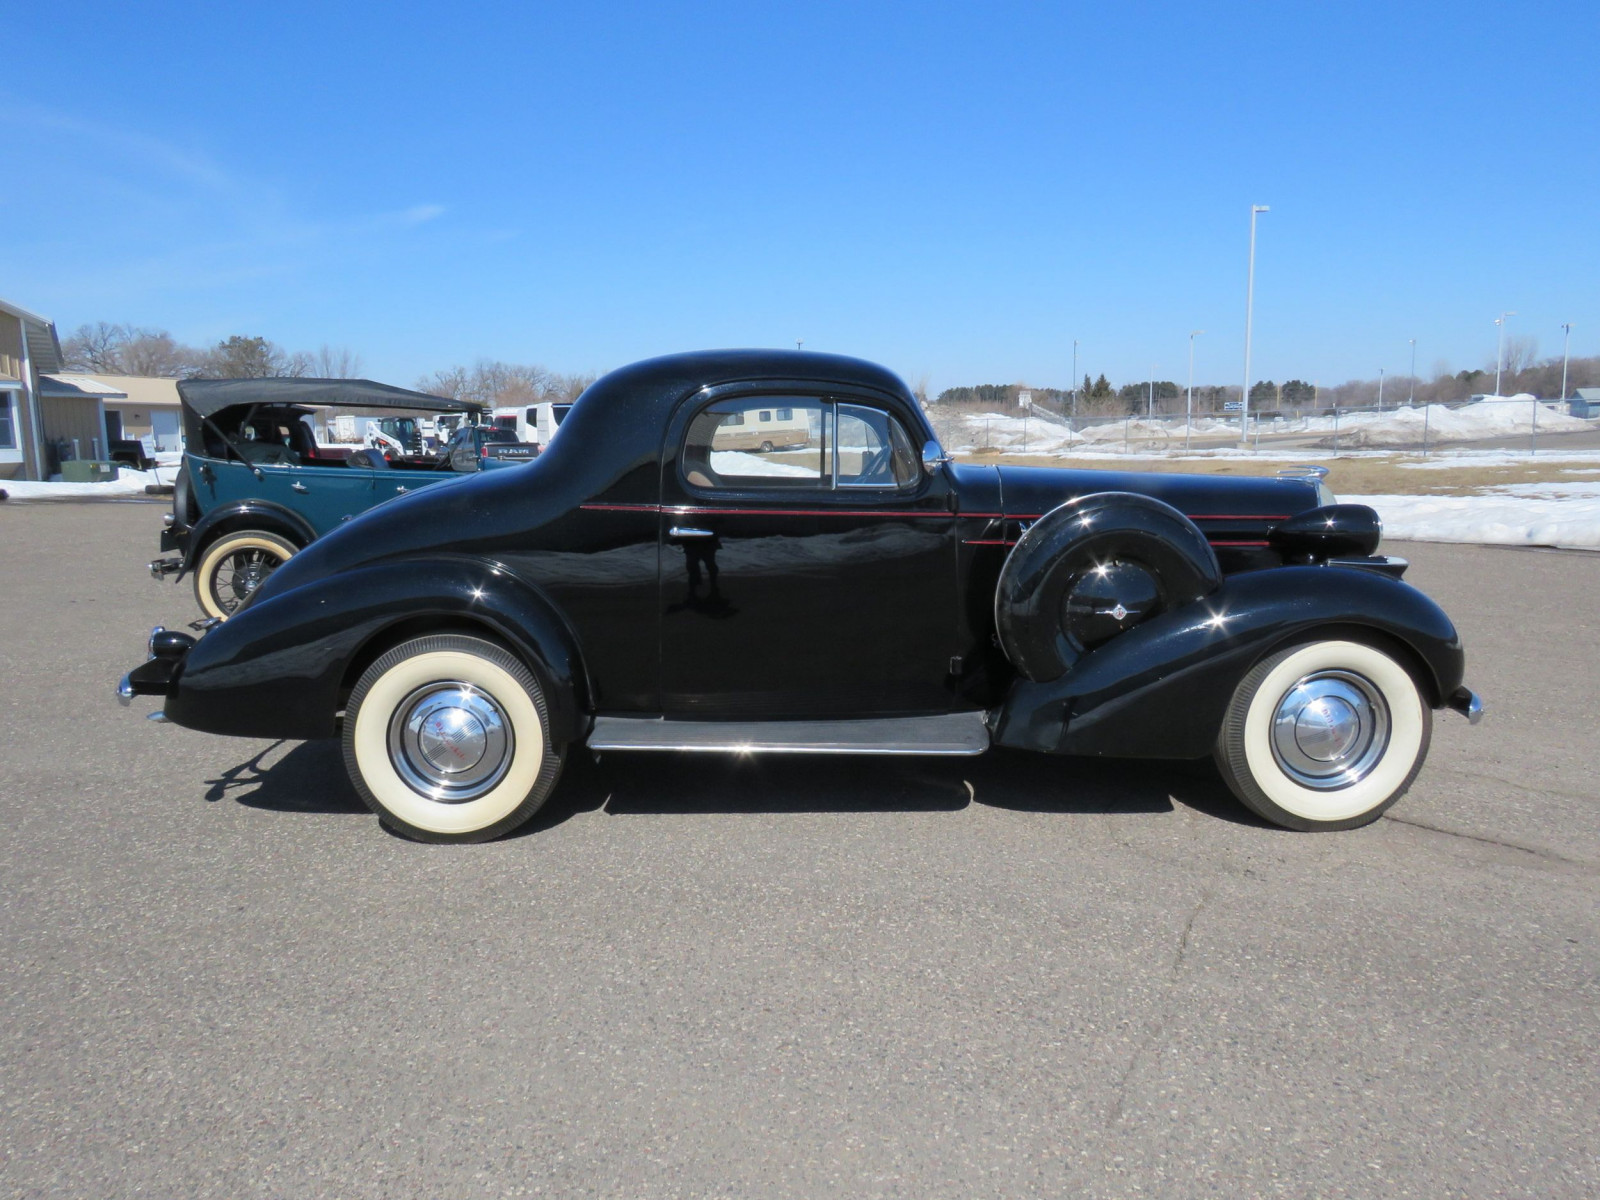 1936 Oldsmobile 3 Window Coupe - Image 5